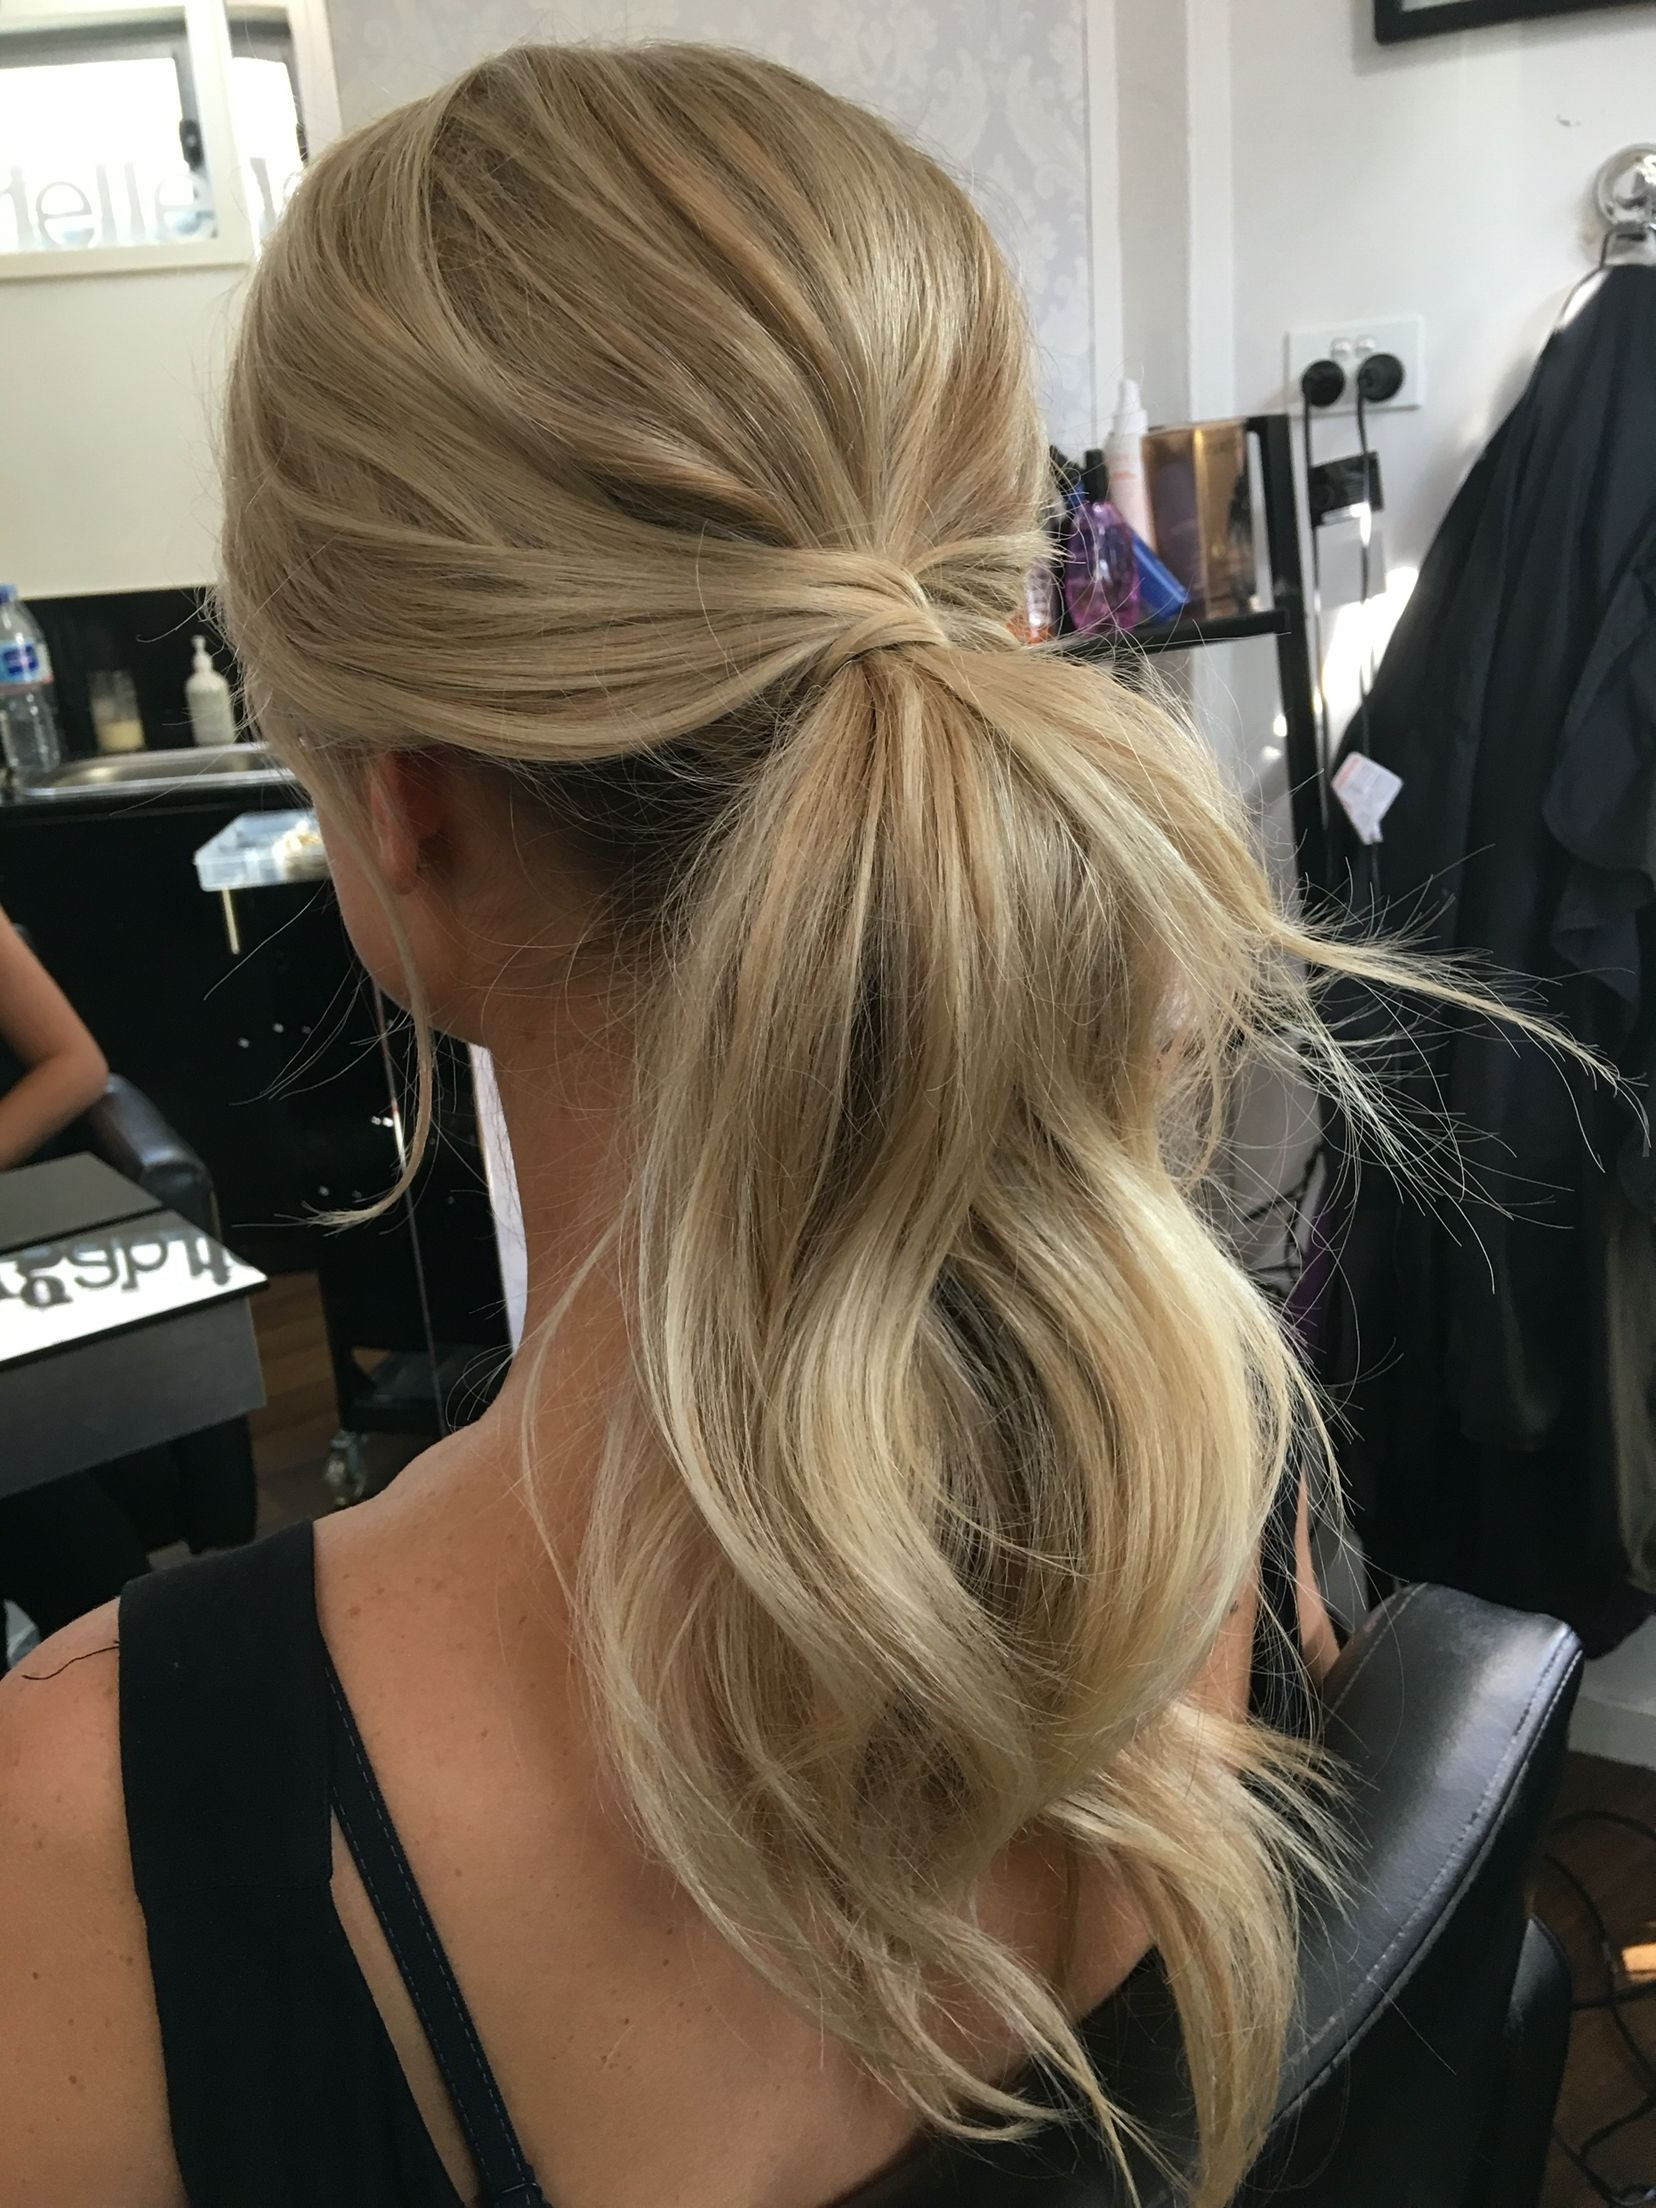 Wedding Hairstyles (View 19 of 20)